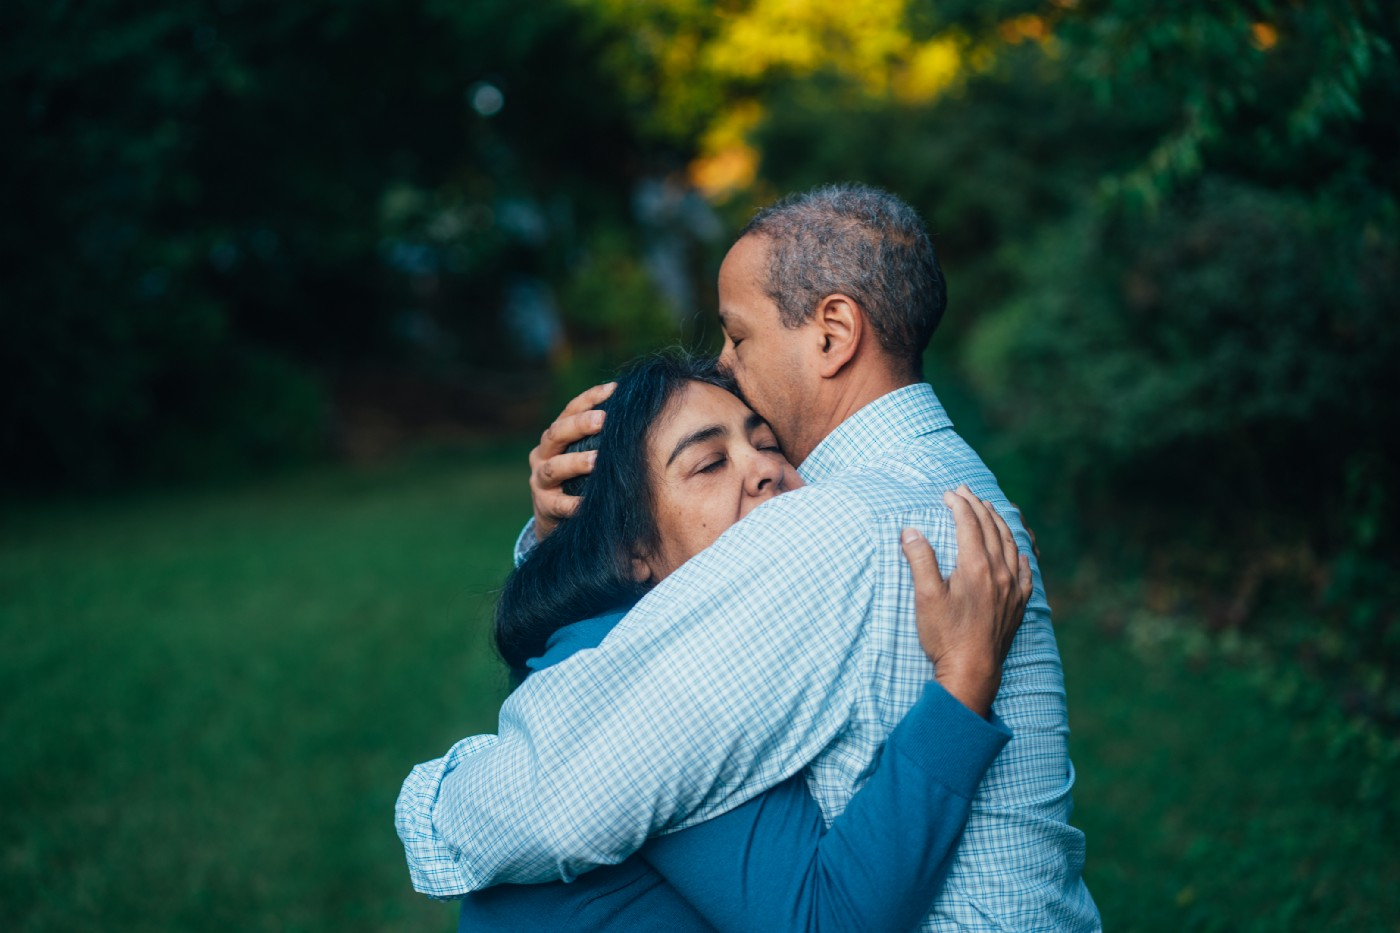 A man is hugging a woman